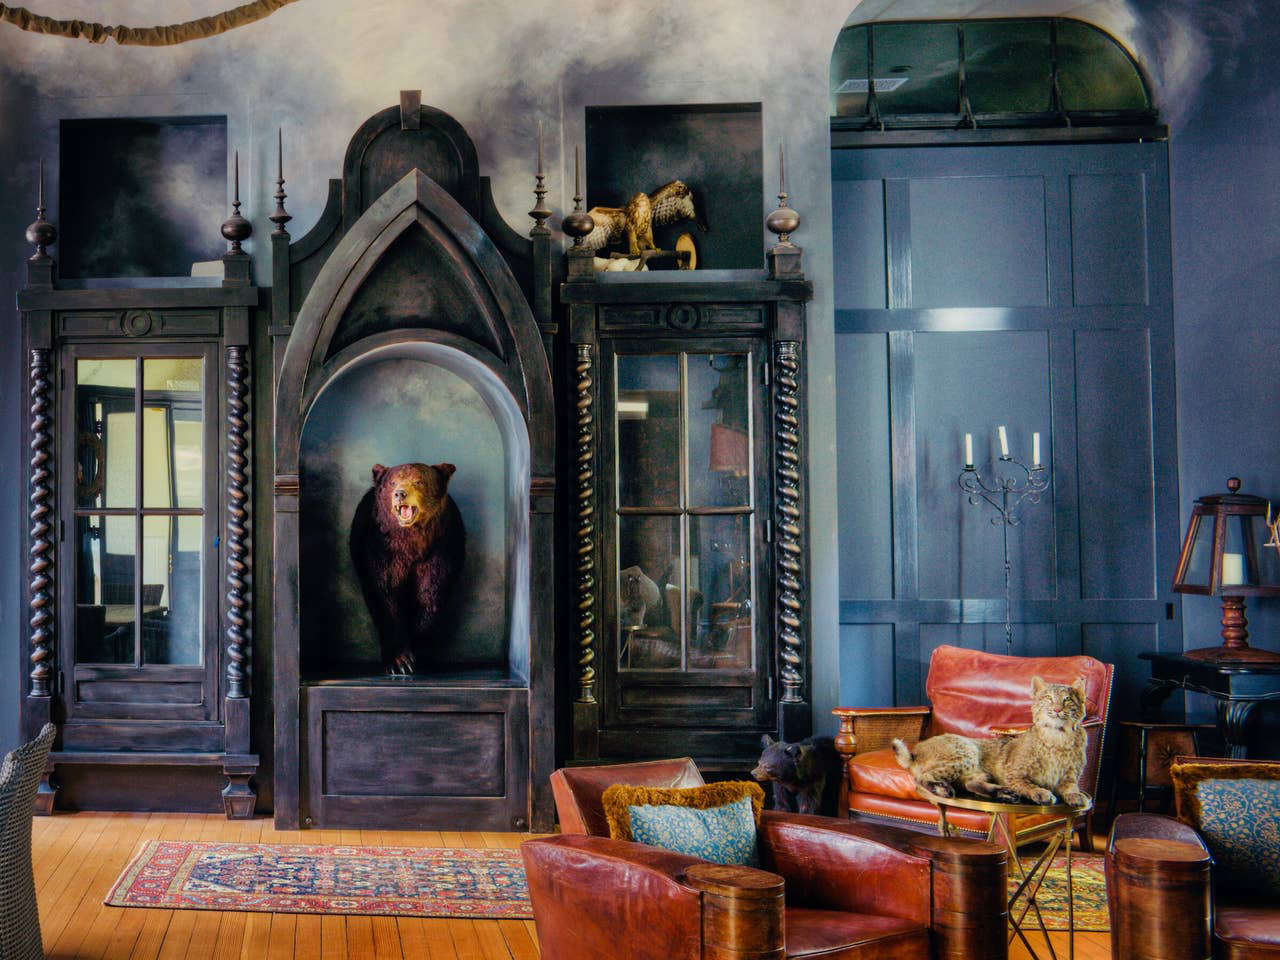 The great room is filled with curiosities, including a taxidermy bear and bobcat.